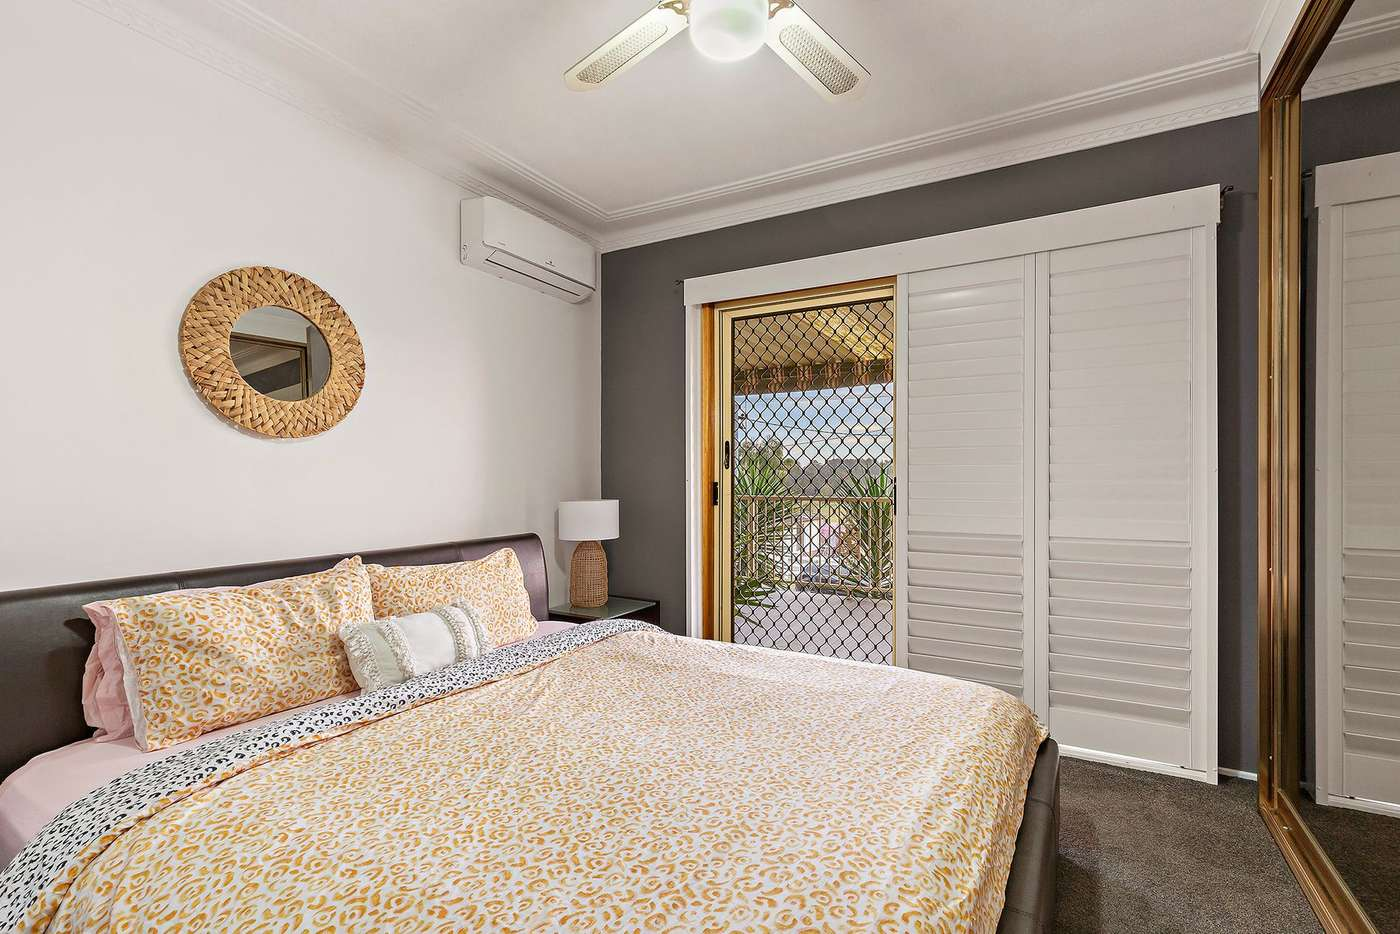 Fifth view of Homely house listing, 76 Marsden Street, Shortland NSW 2307